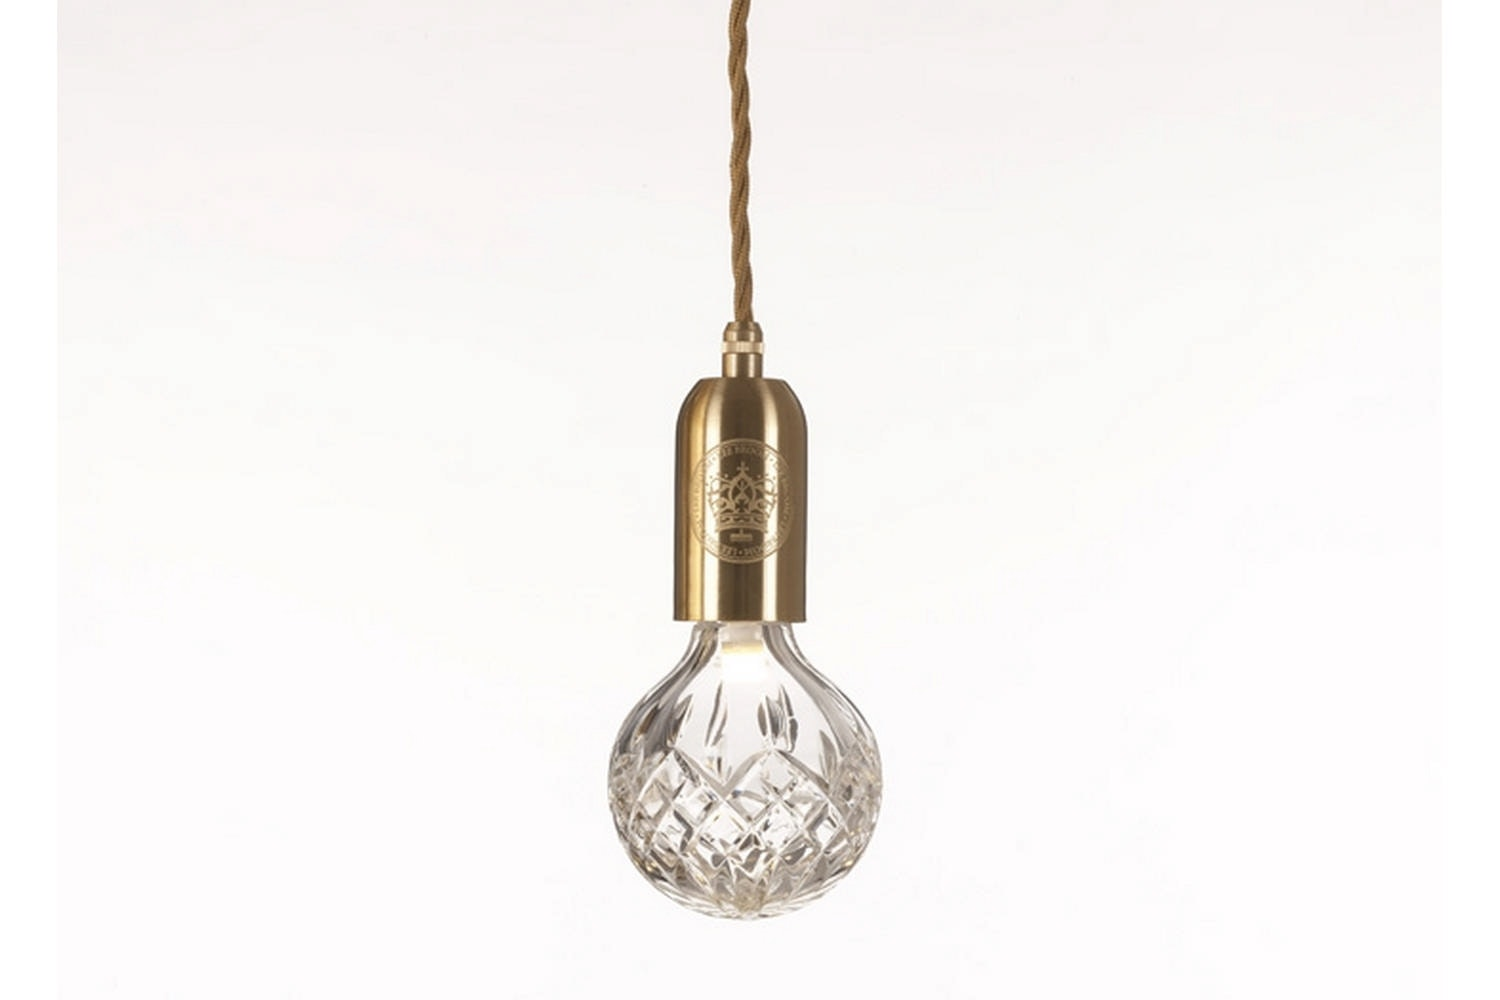 Clear Crystal Bulb Pendant - Brushed Brass by Lee Broom